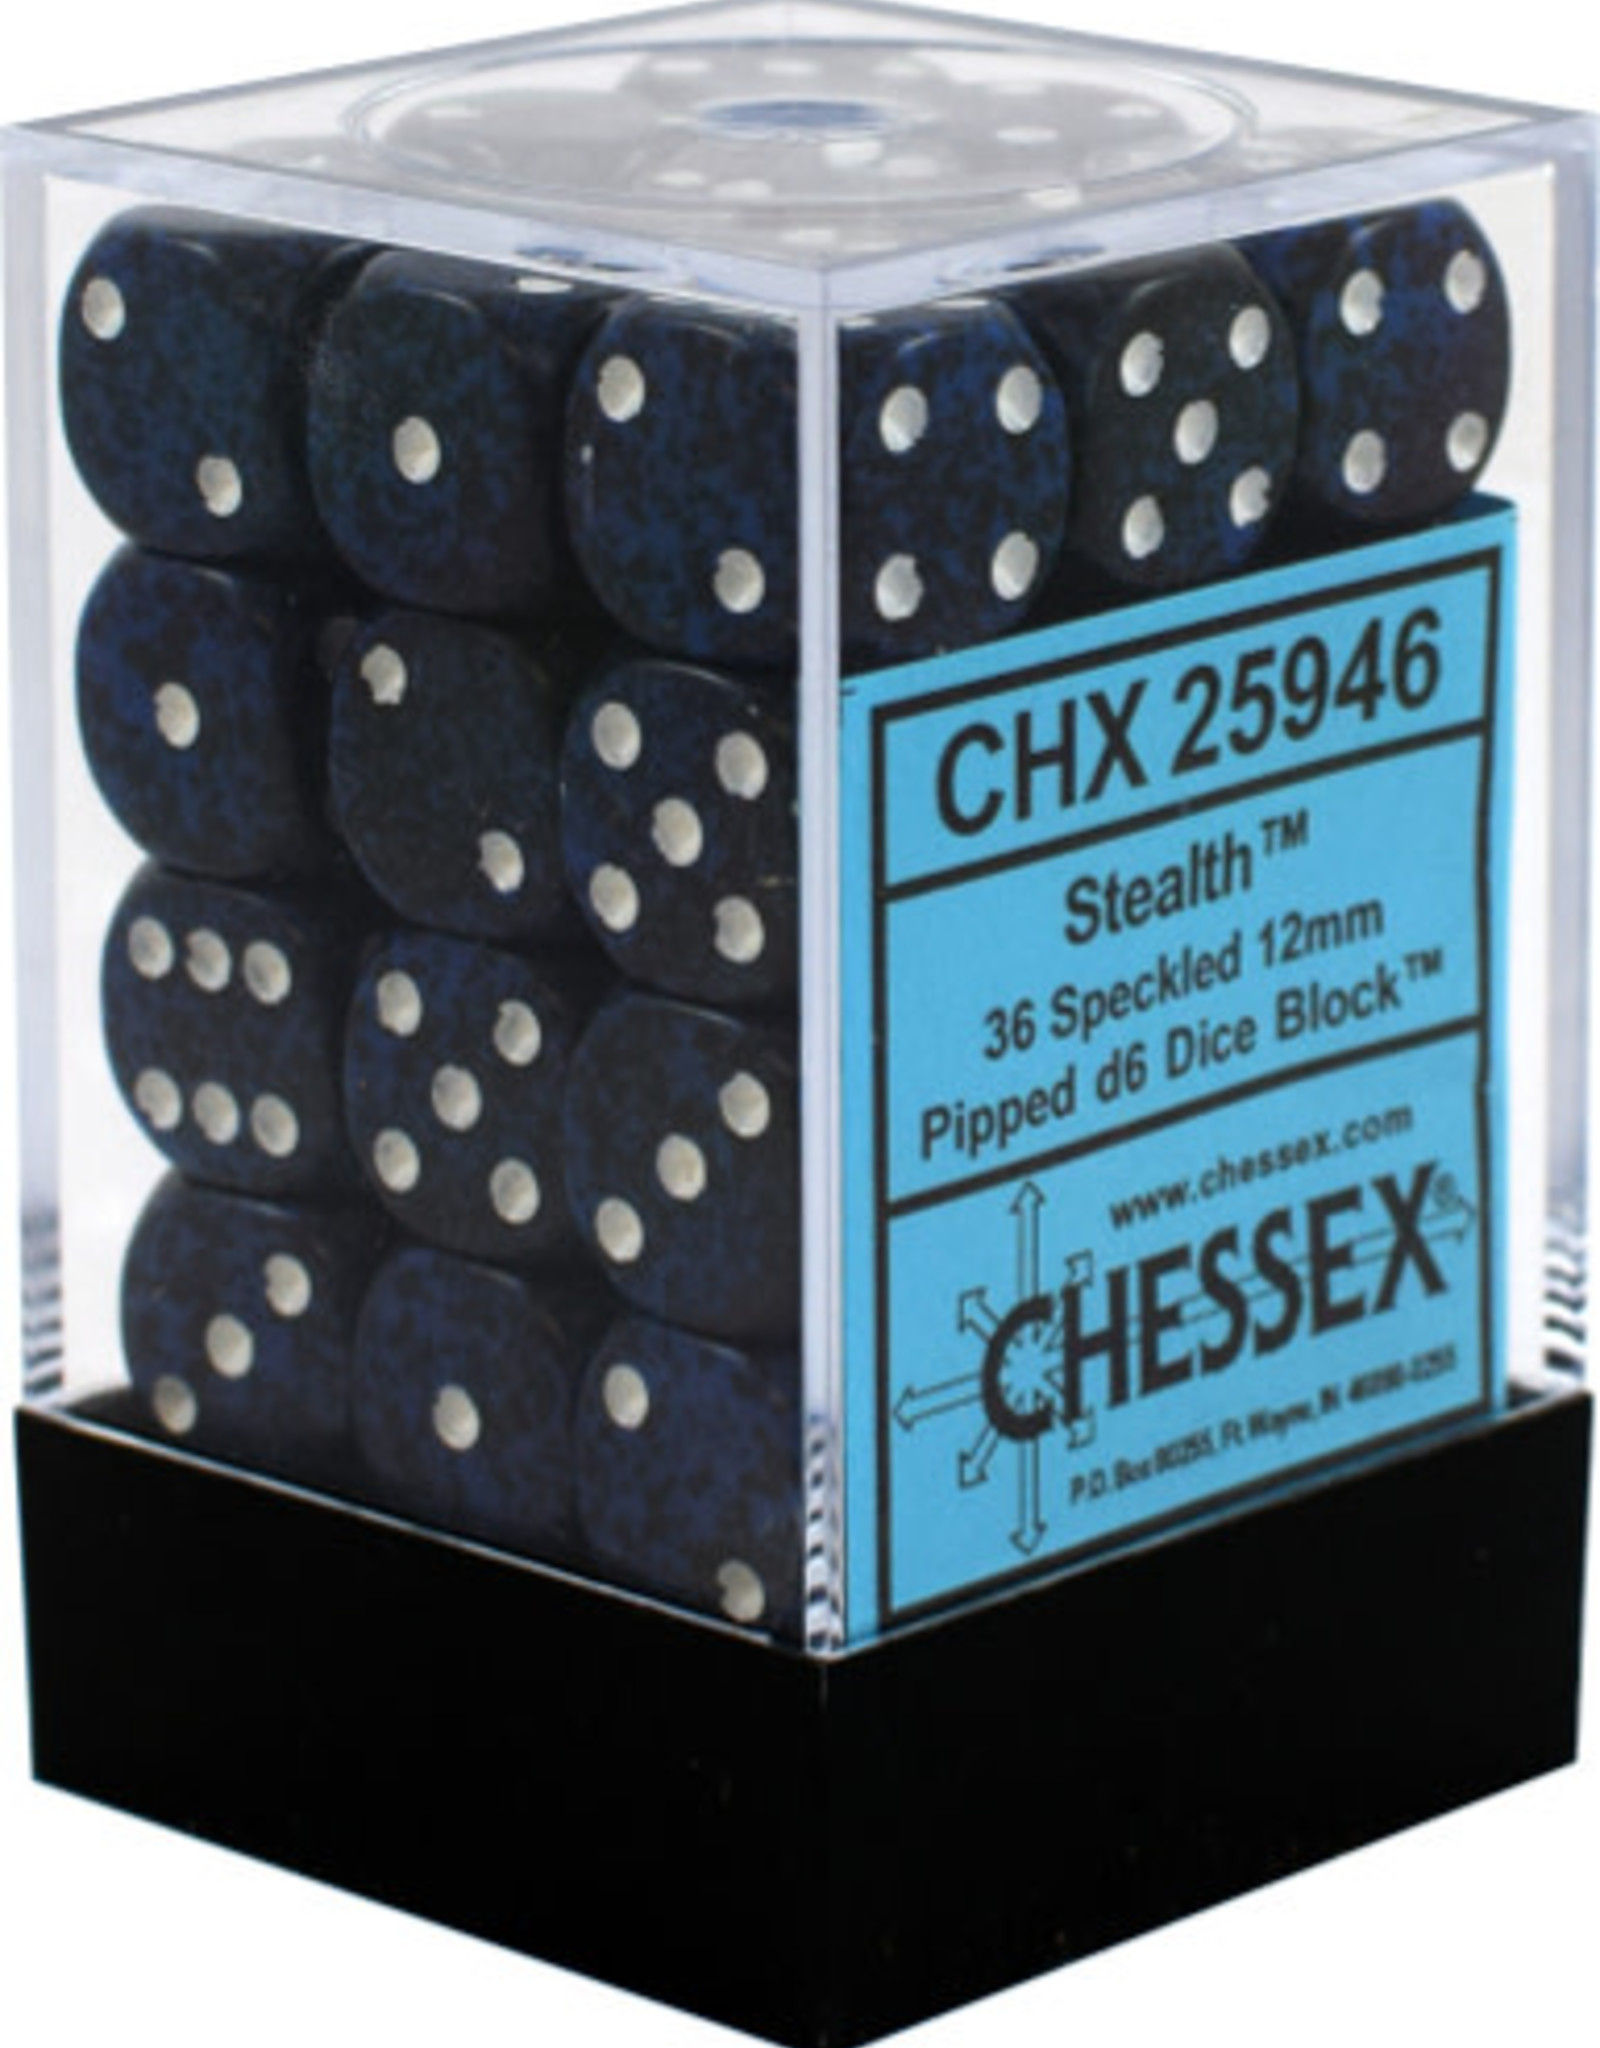 CHX 25946 Speckled 12mm D6 Stealth